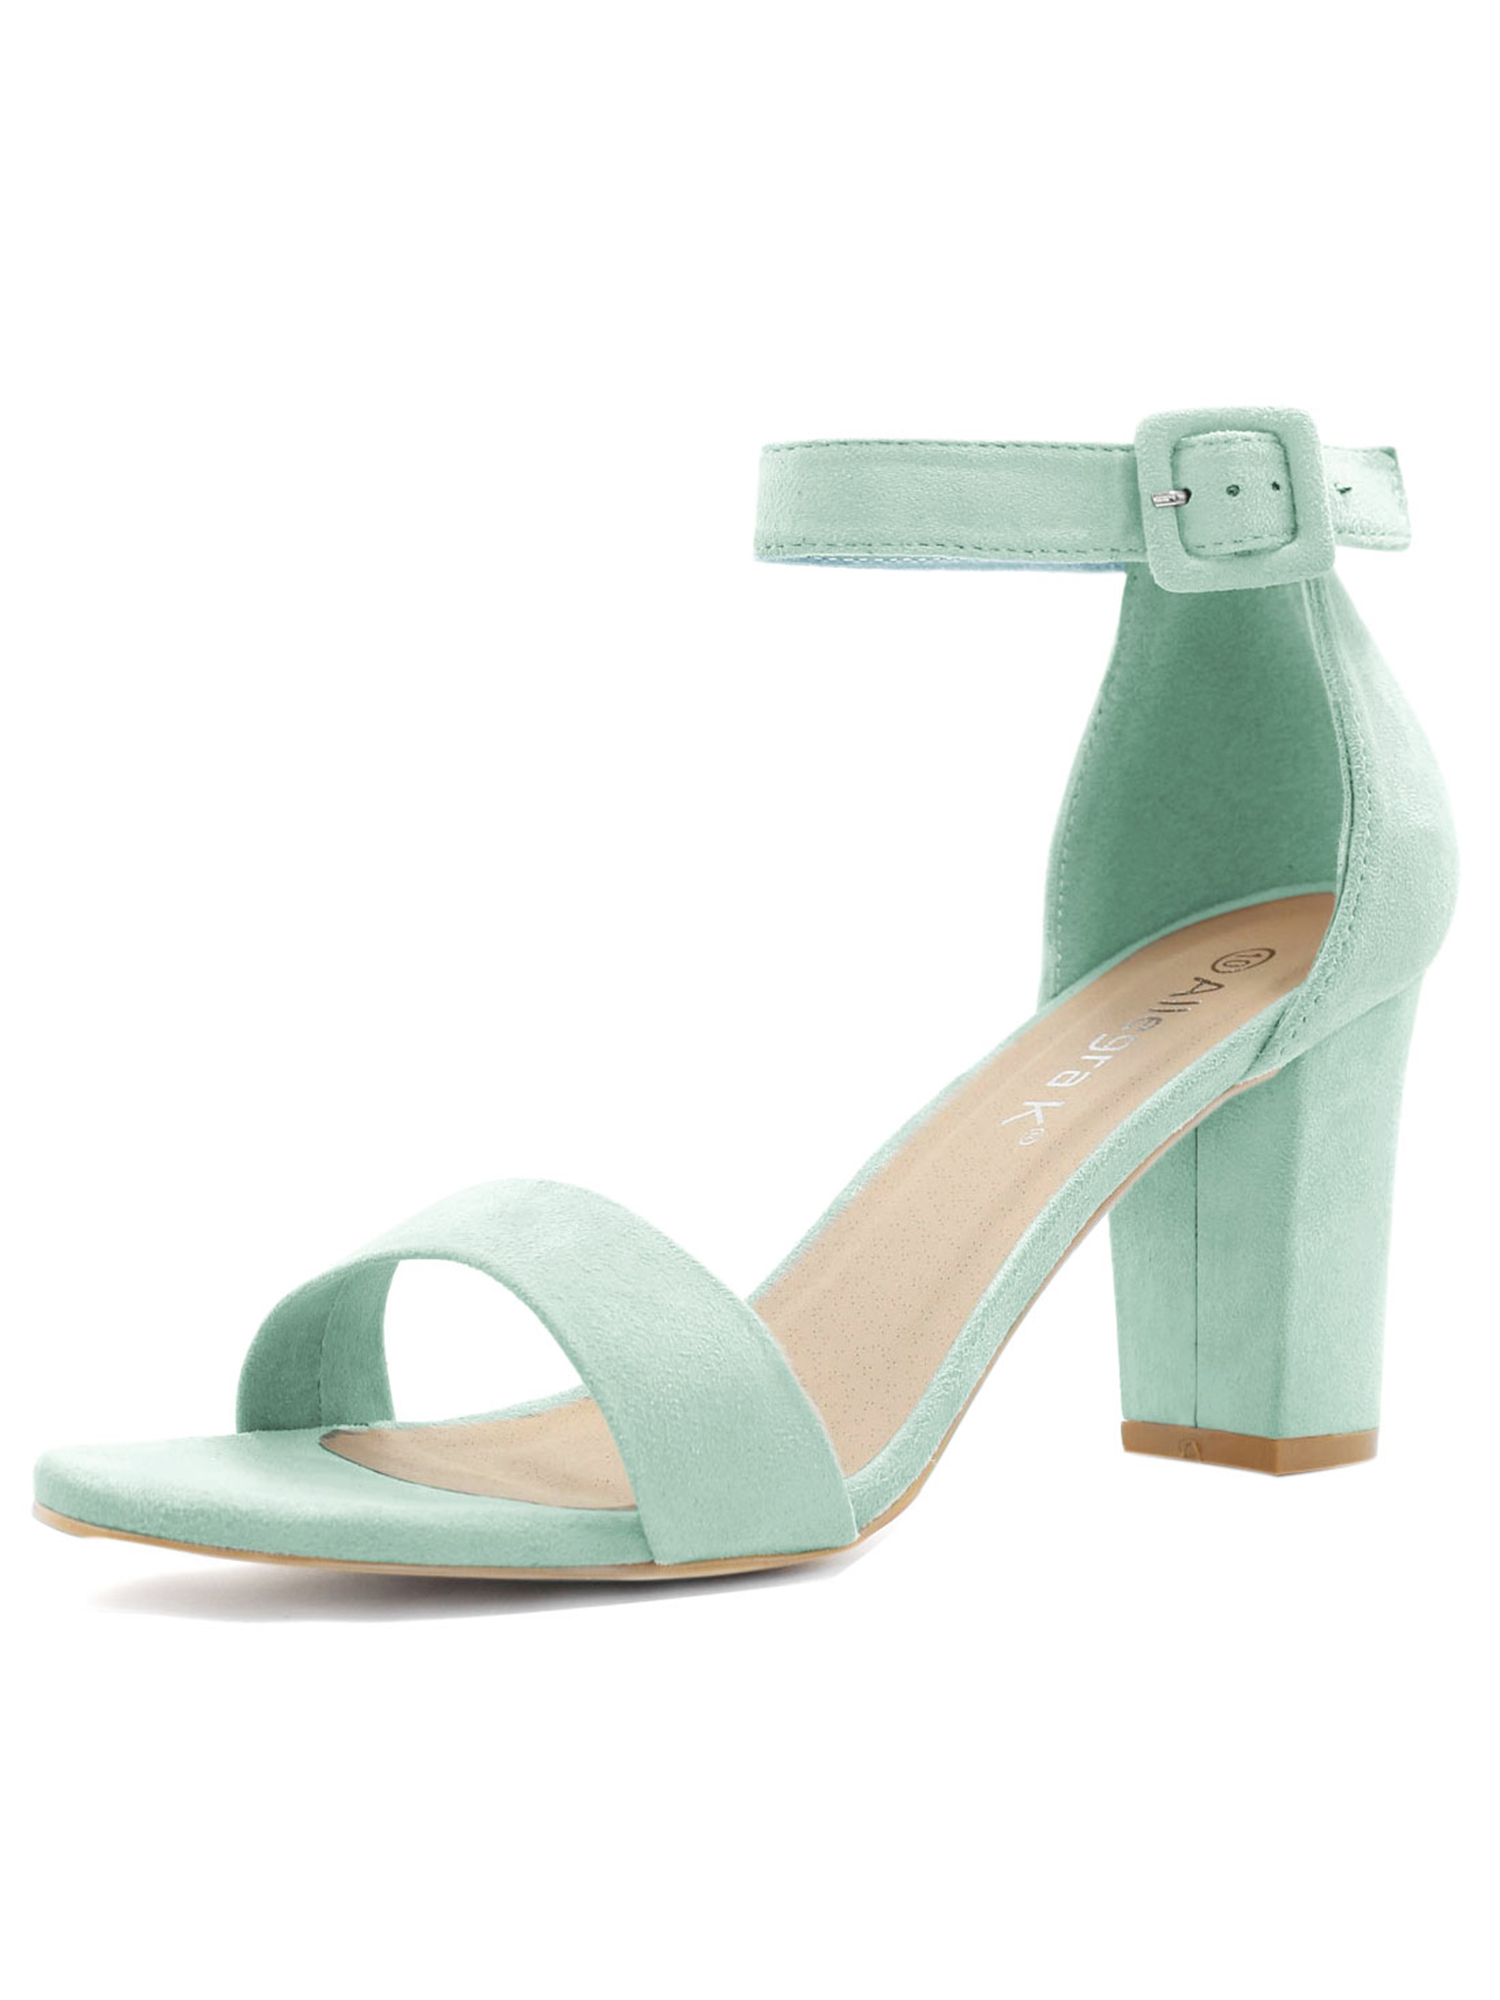 bea5f3325d4 Unique Bargains Women s Chunky High Heel Open Toe Ankle Strap ...